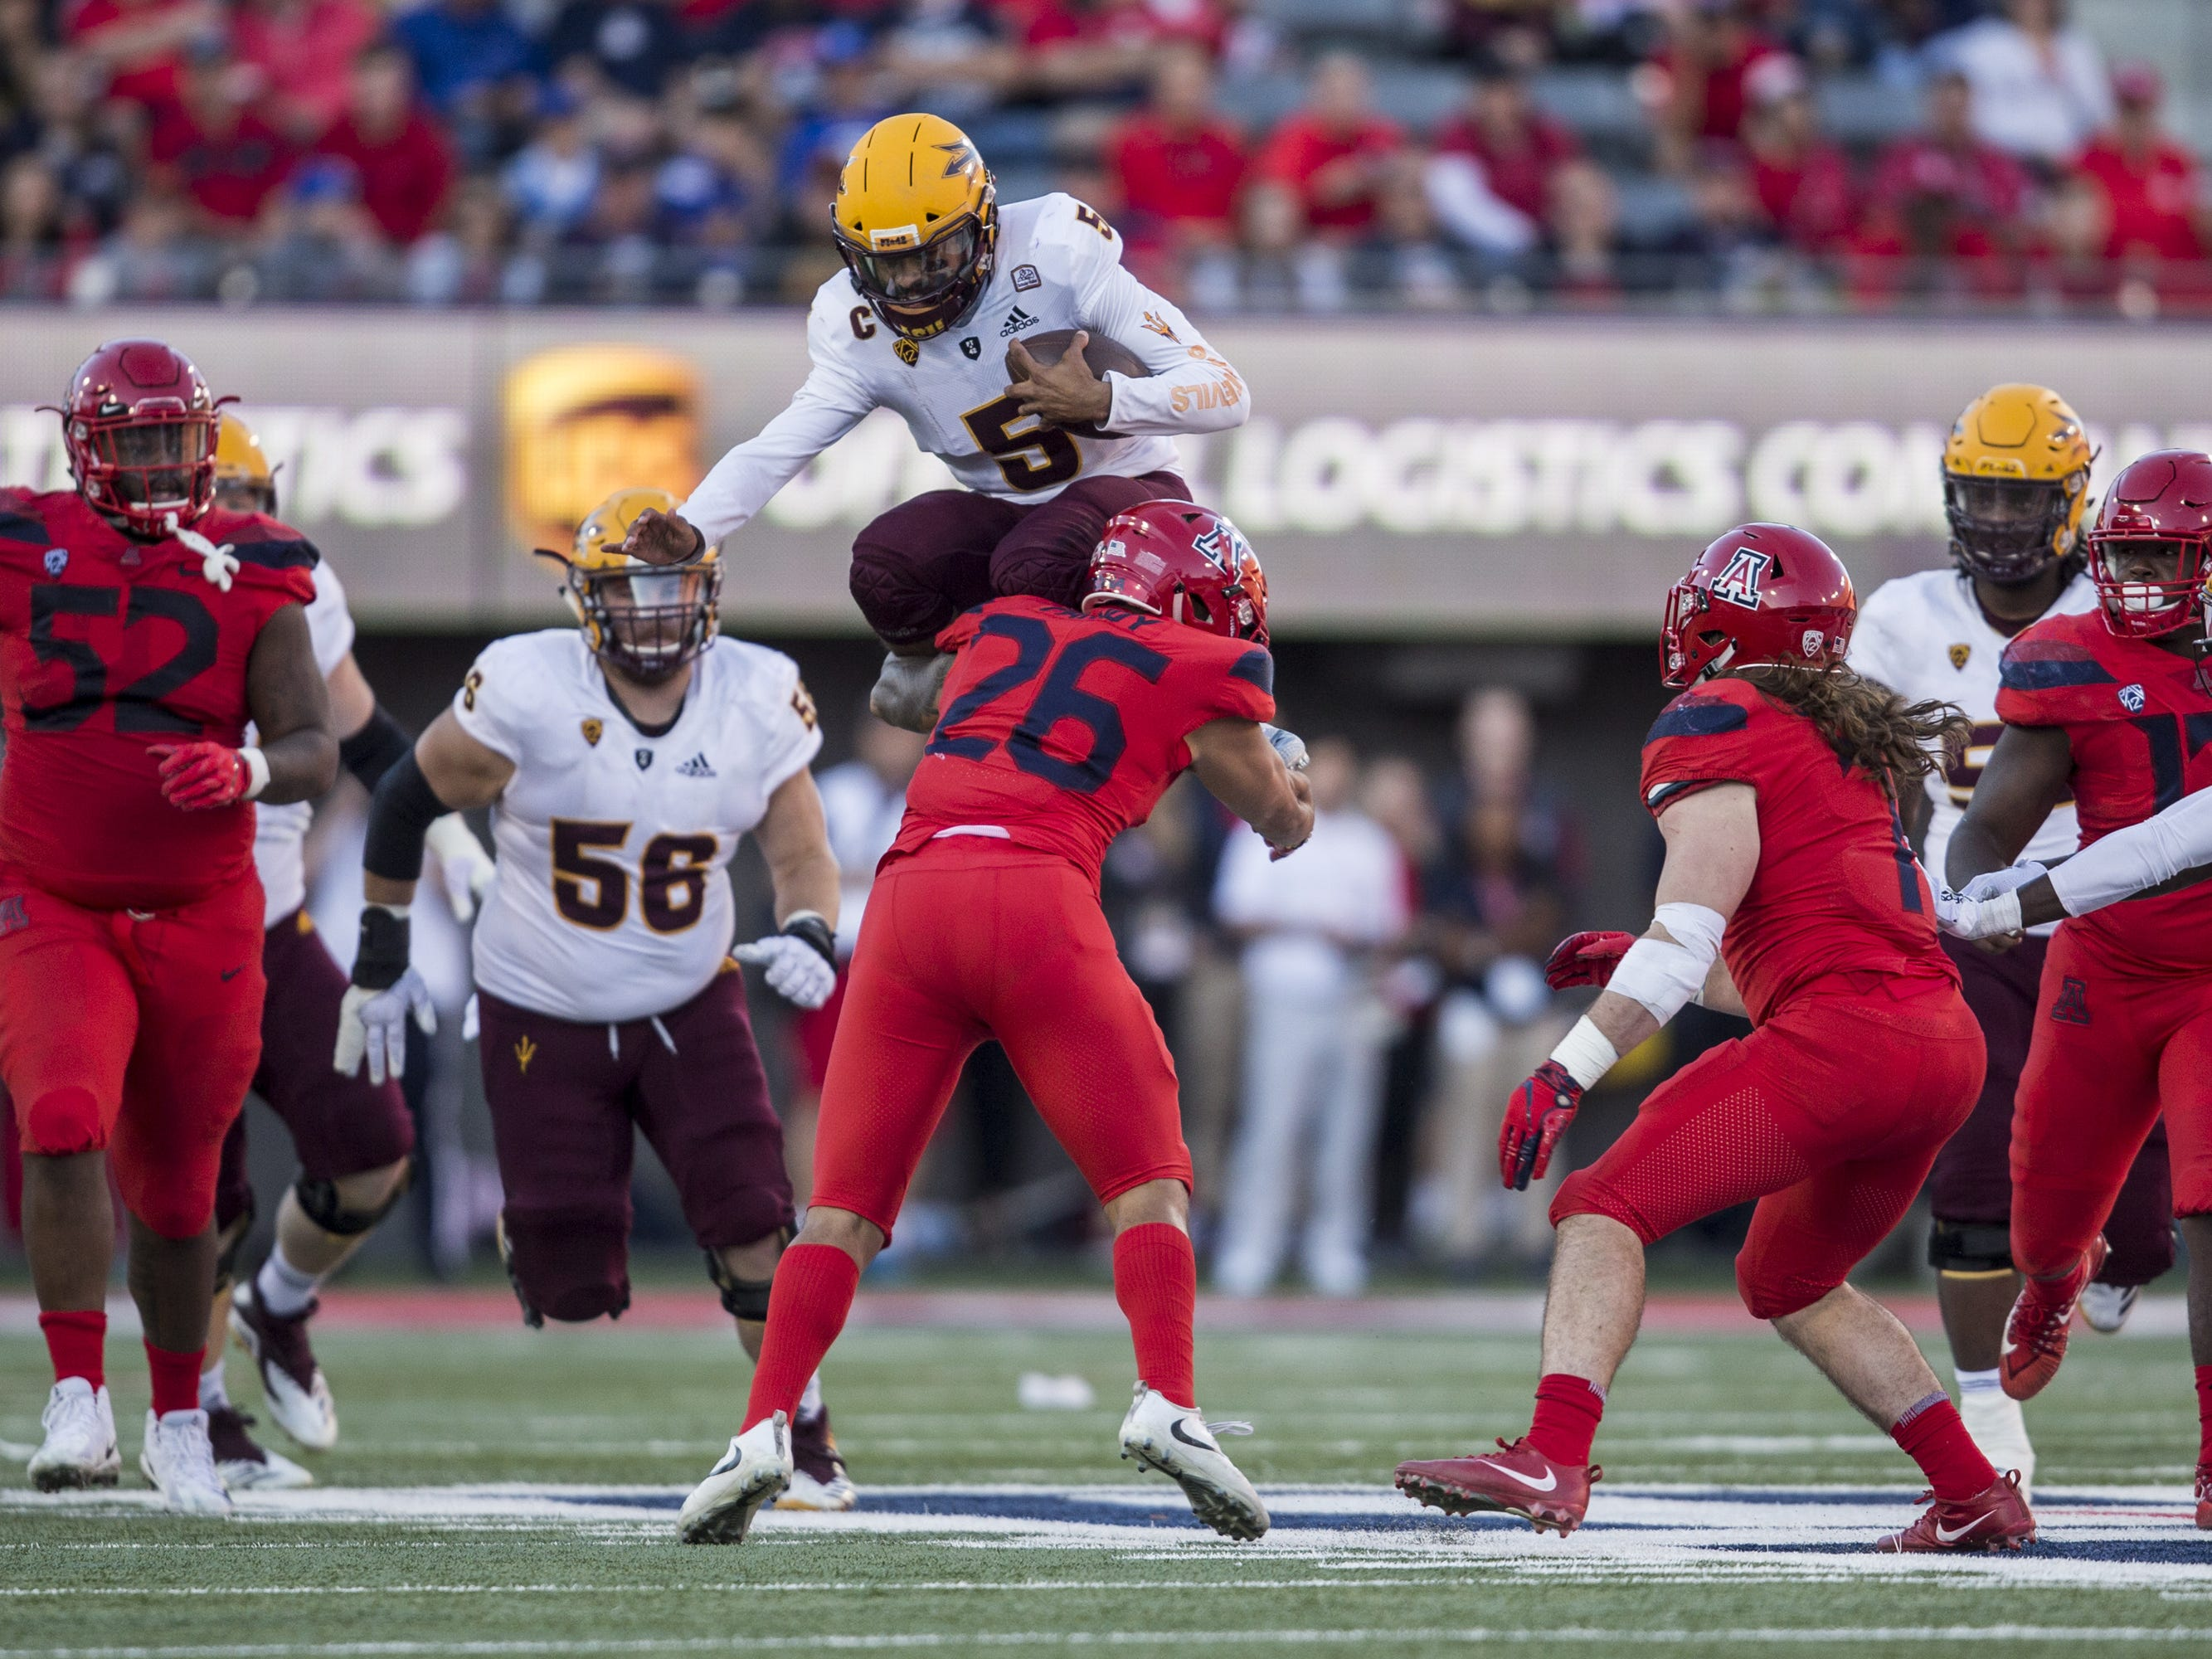 Arizona State's Manny Wilkins attempts to hurdle Arizona's Anthony Pandy during the second half of the Territorial Cup on Saturday, Nov. 24, 2018, at Arizona Stadium in Tucson, Ariz. Arizona State won, 41-40.